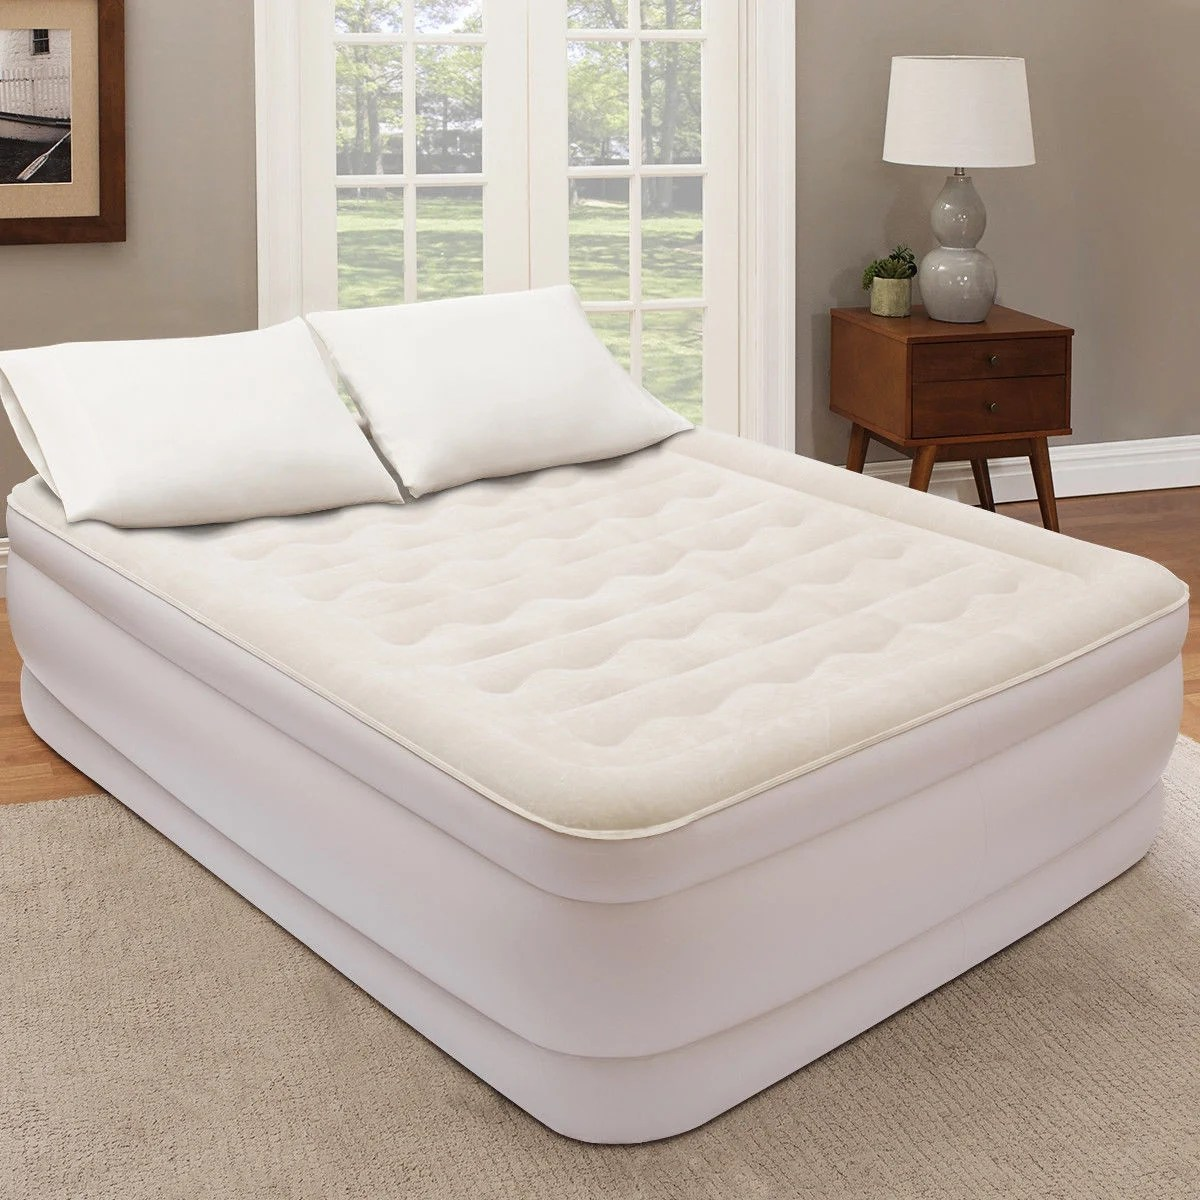 Air Mattress Frame Queen Costway Queen Size Luxury Quilt Top Raised Air Mattress Elevated Airbed Built In Pump